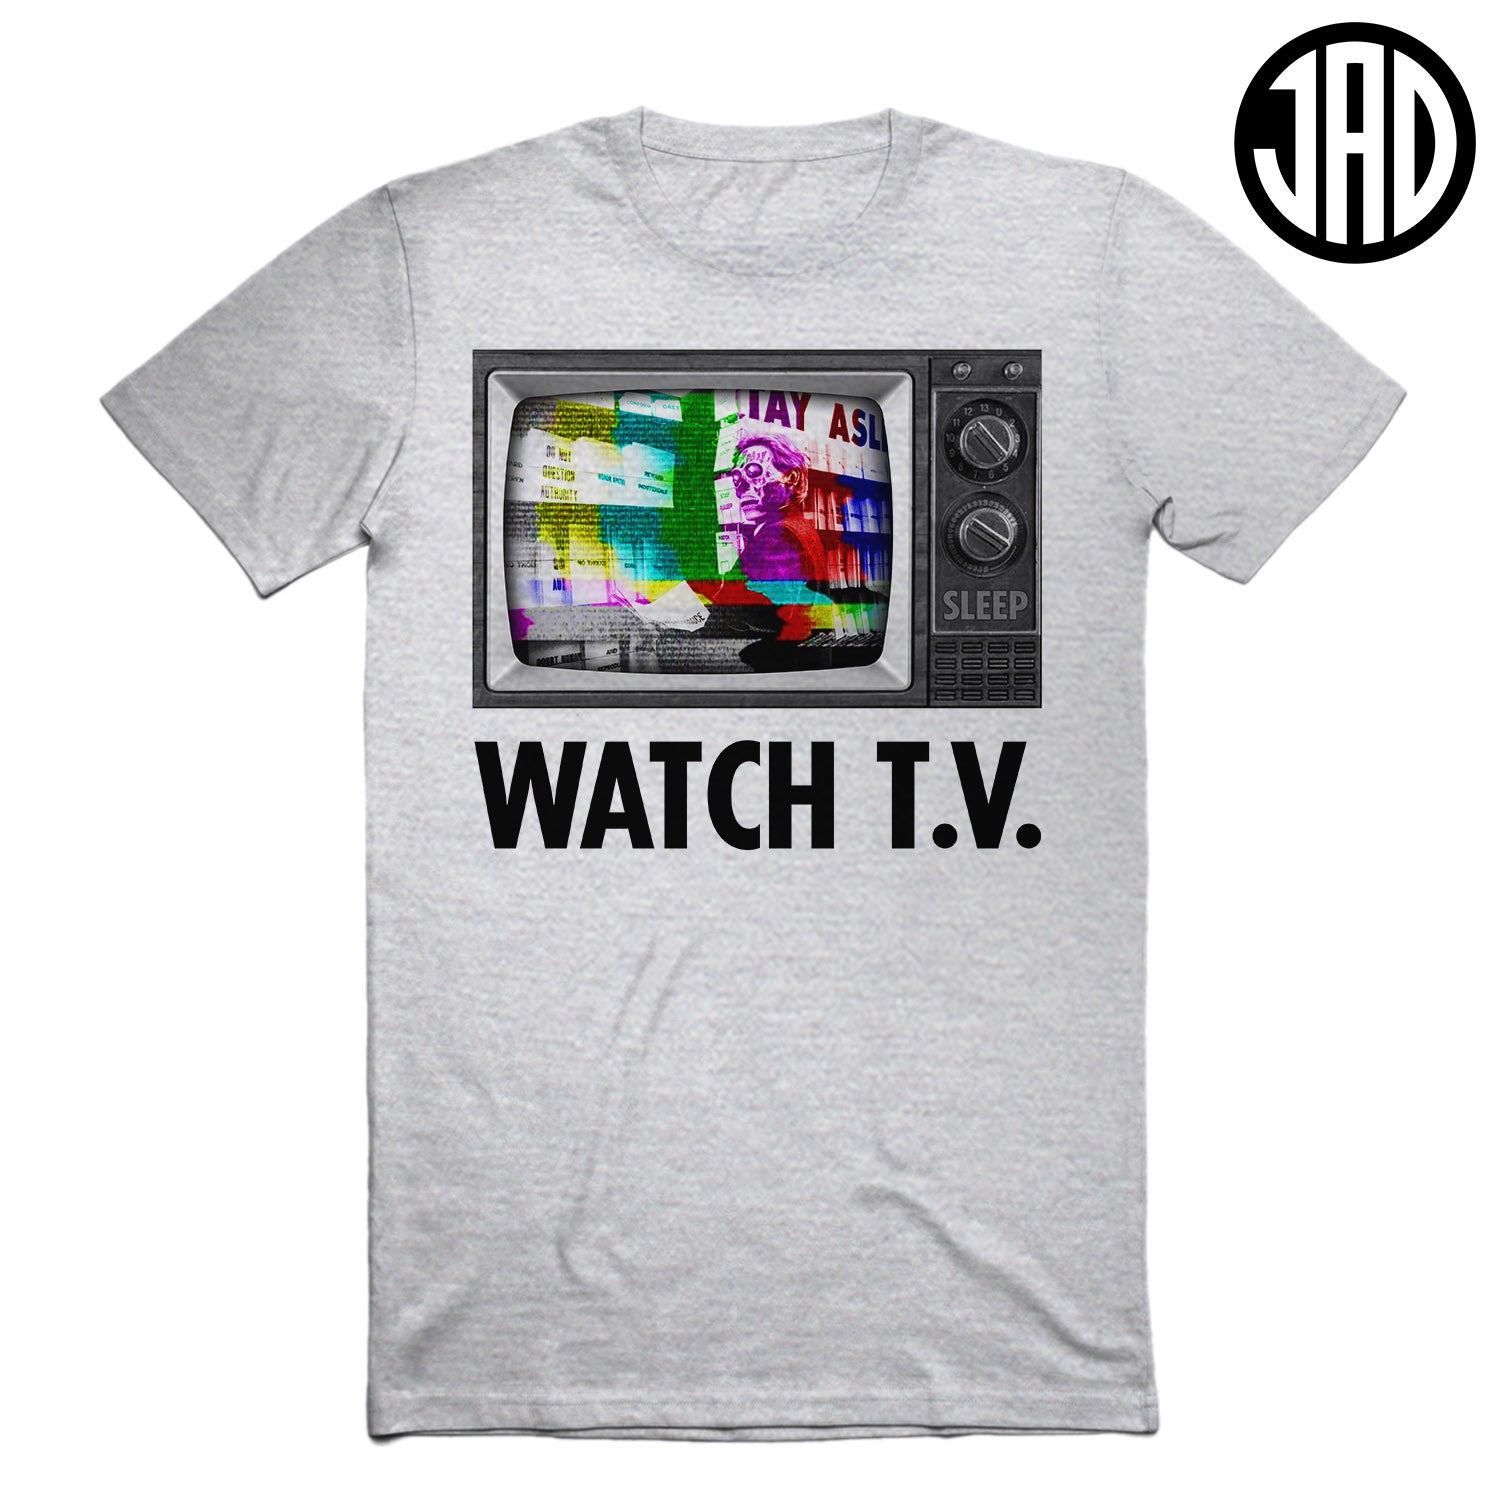 Watch TV - Men's Tee